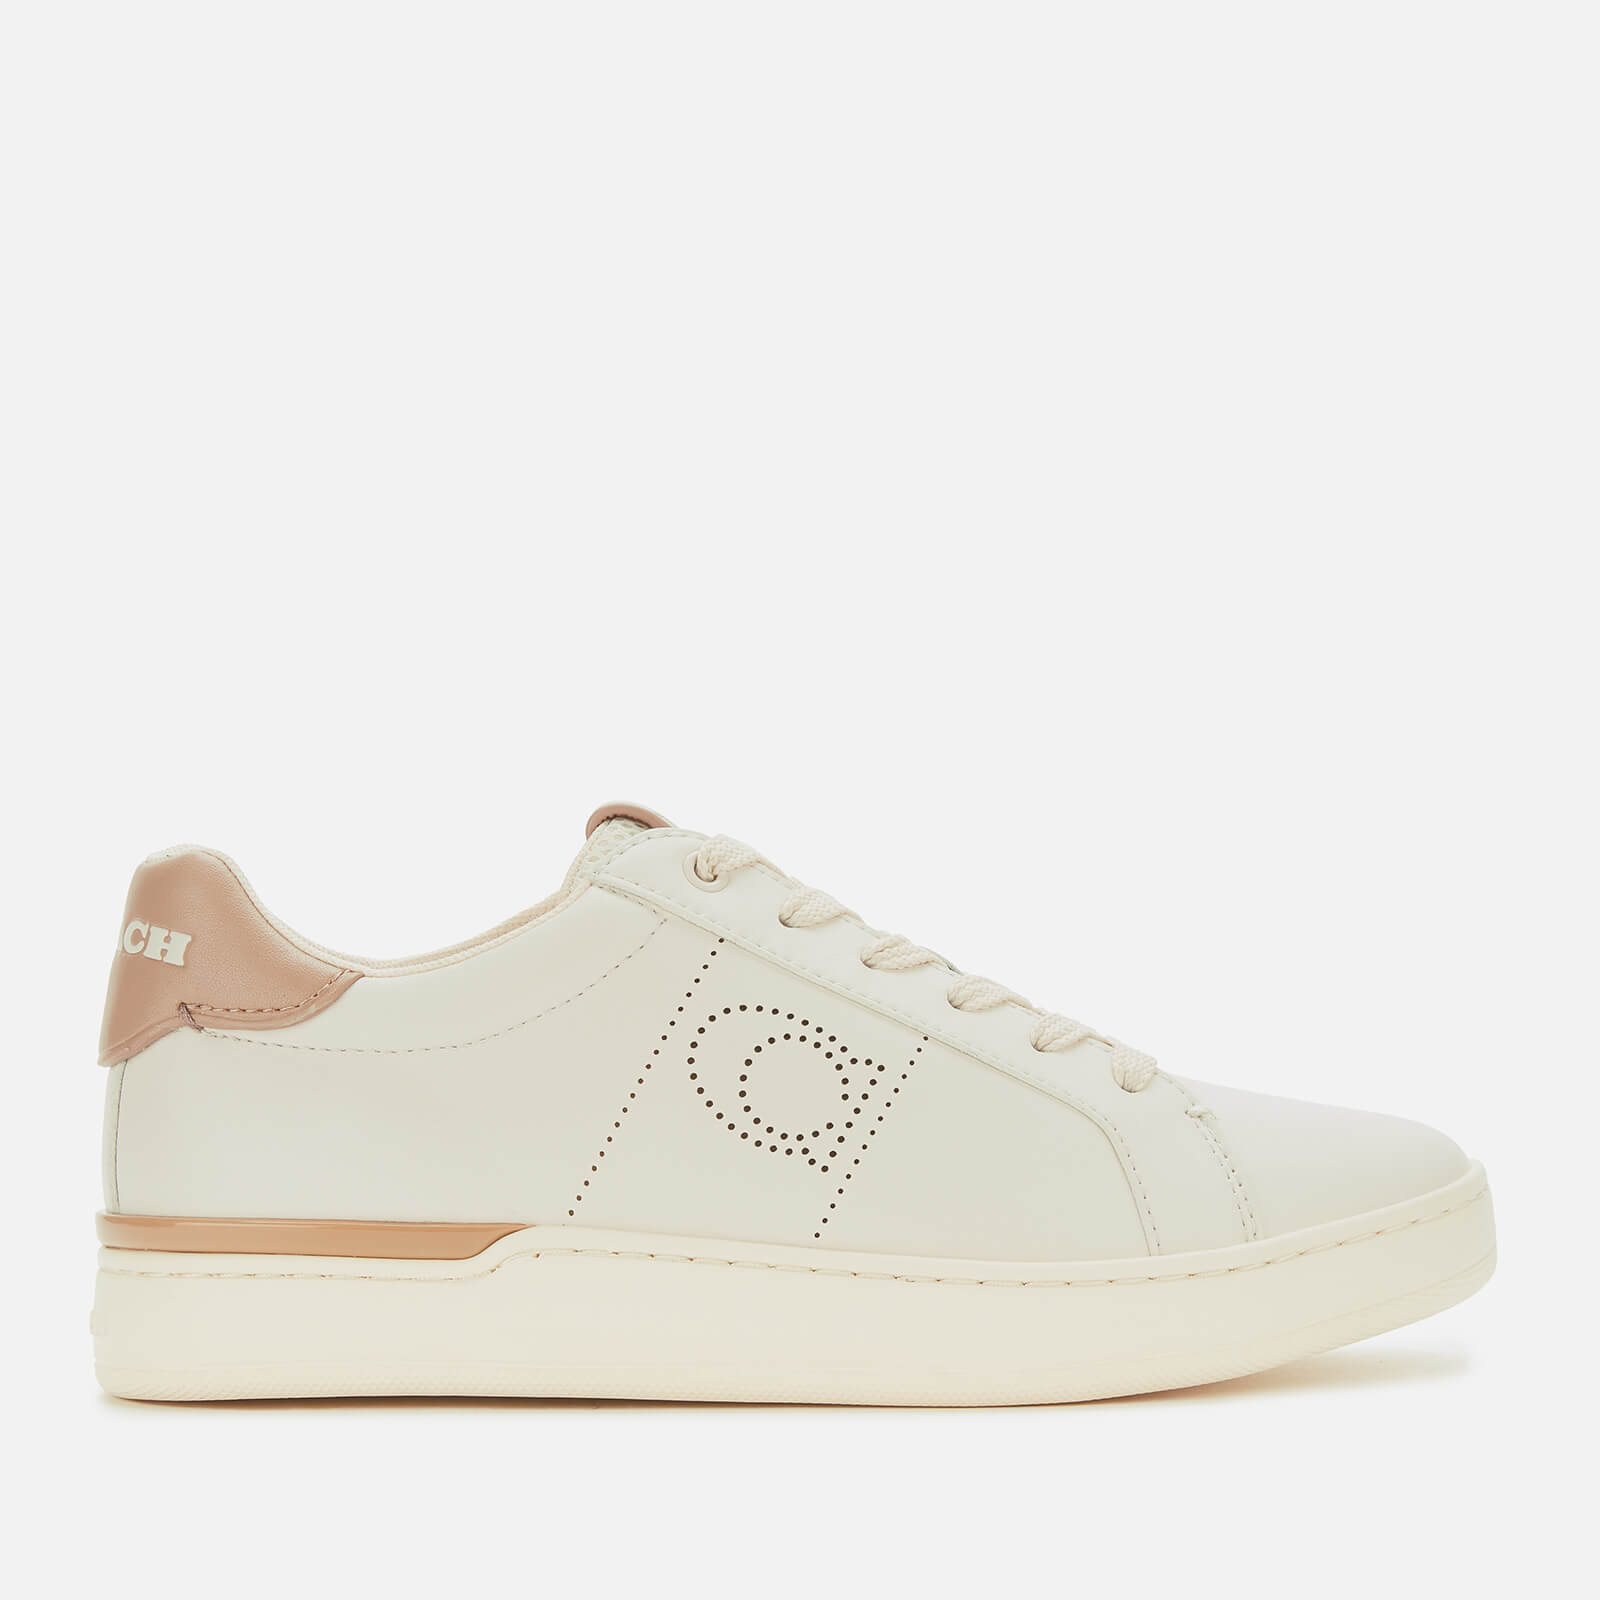 Coach Women's ADB Leather/Suede Cupsole Trainers - Chalk/Taupe - UK 4